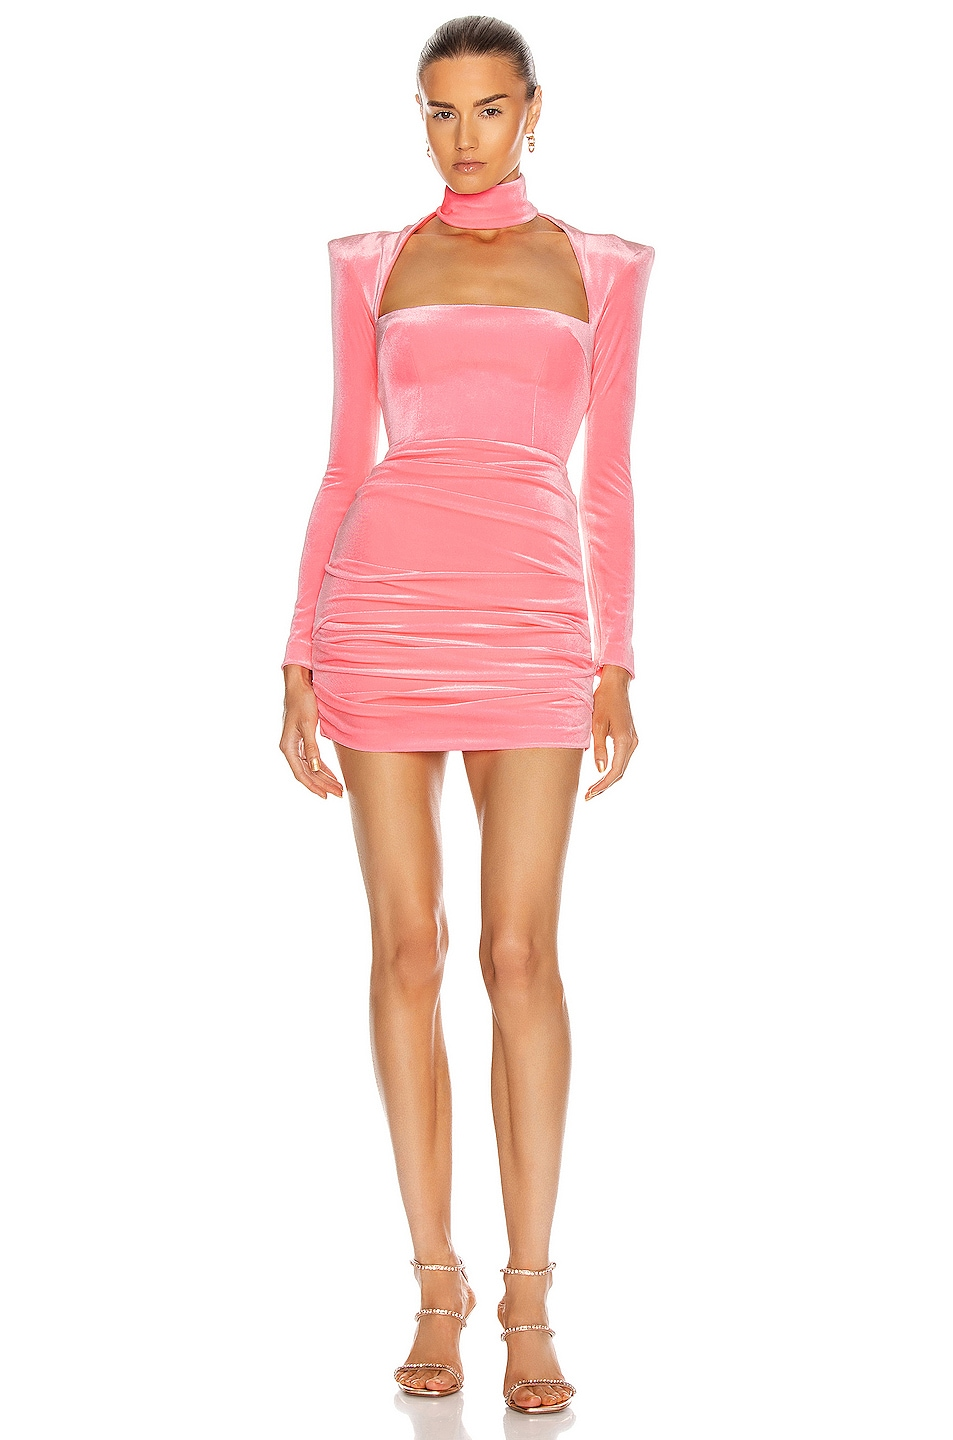 Image 1 of Alex Perry Ashton Dress in Fluro Pink